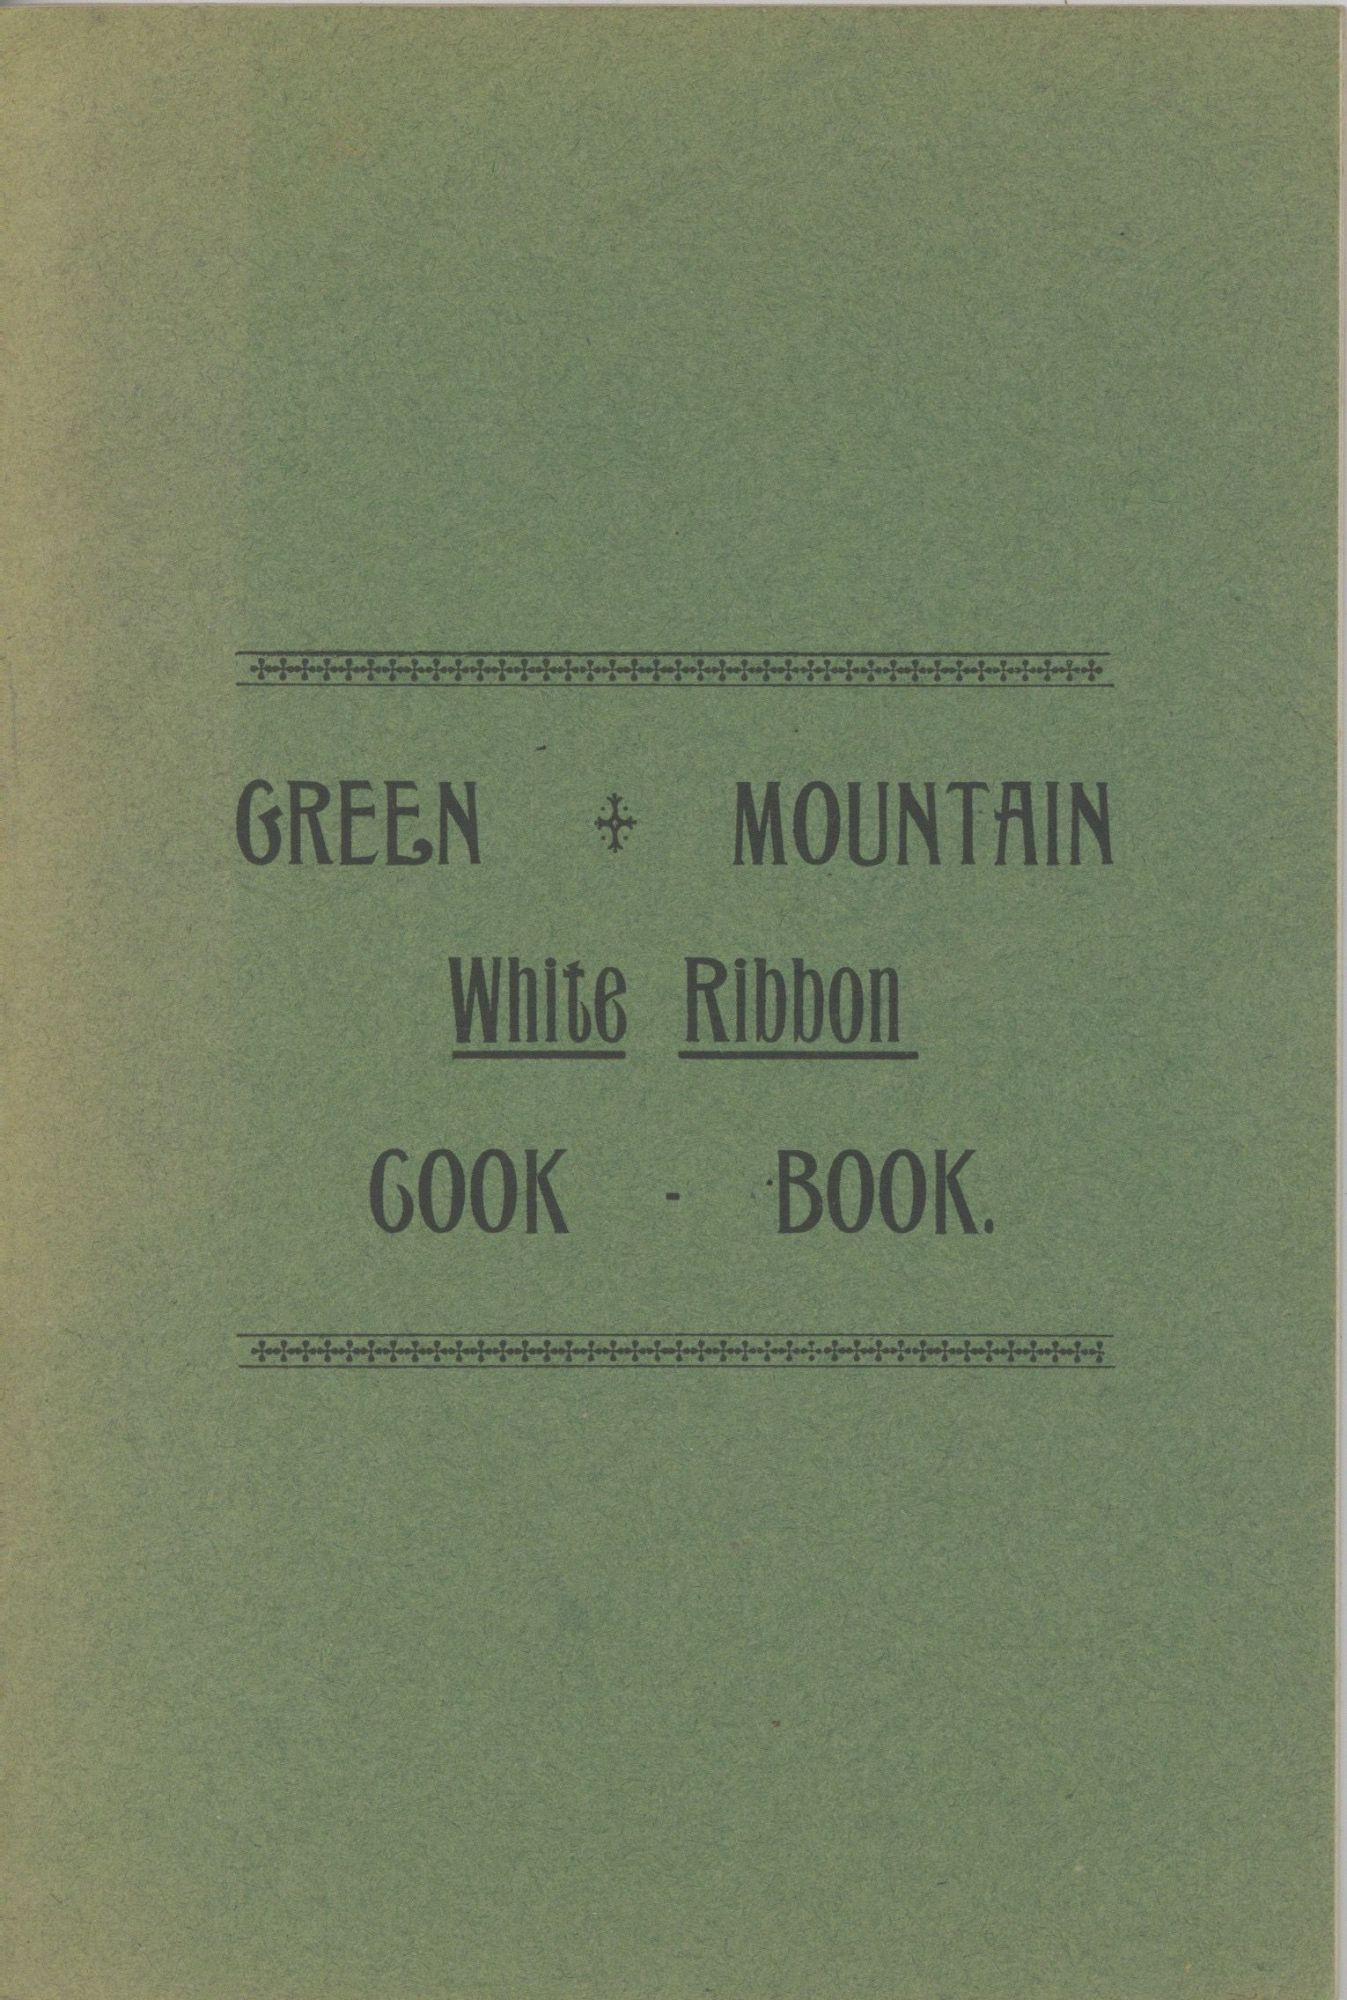 The Green Mountain White Ribbon Cook Book, Especially adapted to Young House Keepers and Busy Women. Containing Choice Gleanings from Many Households. Women's Christian Temperance Union of Vermont.